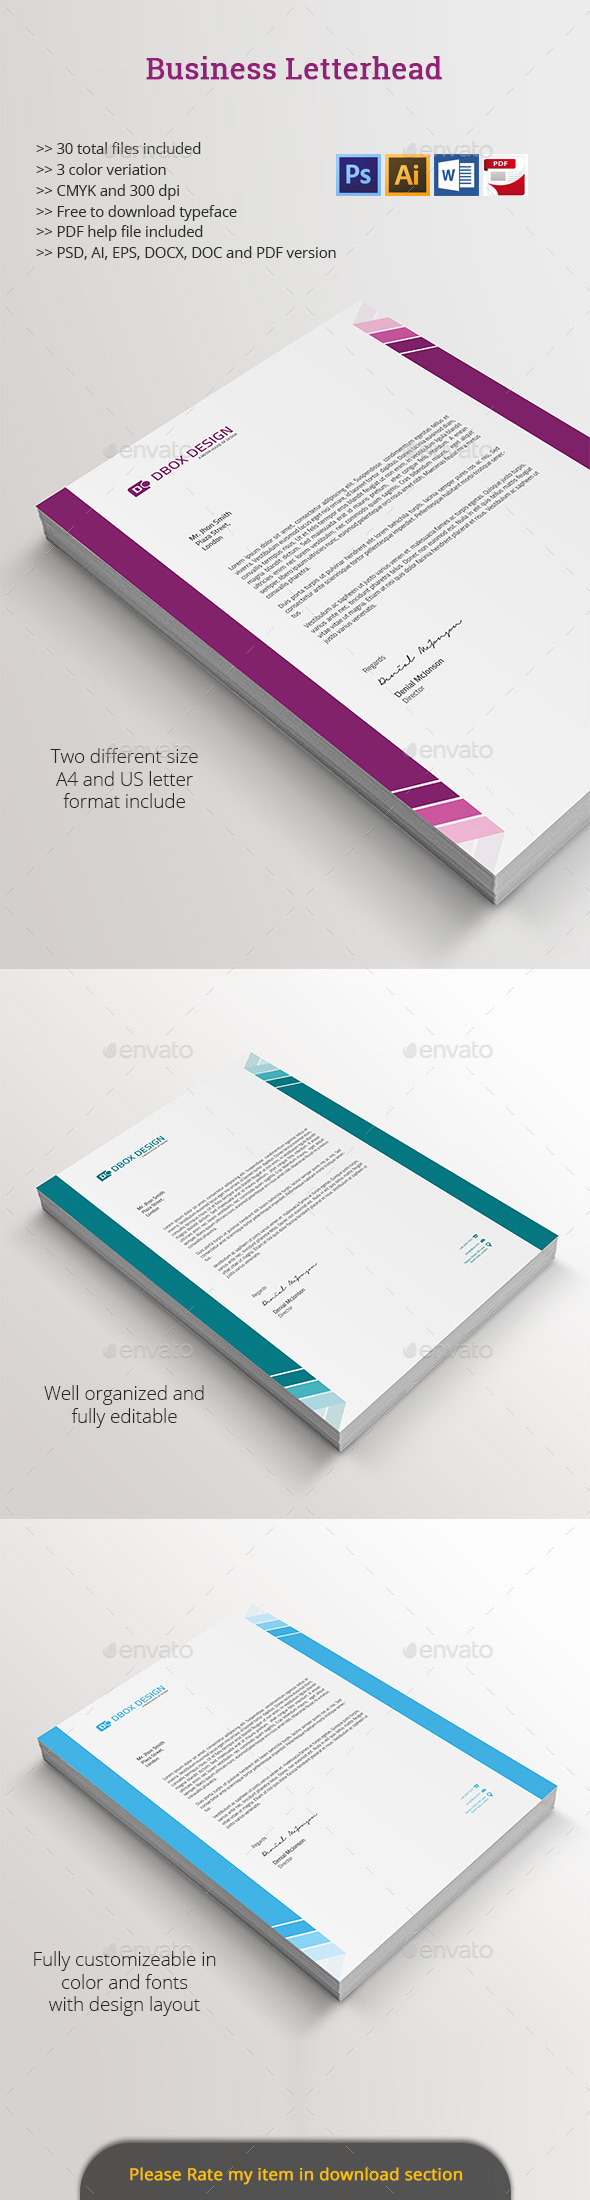 GraphicRiver Business Letterhead 11787067